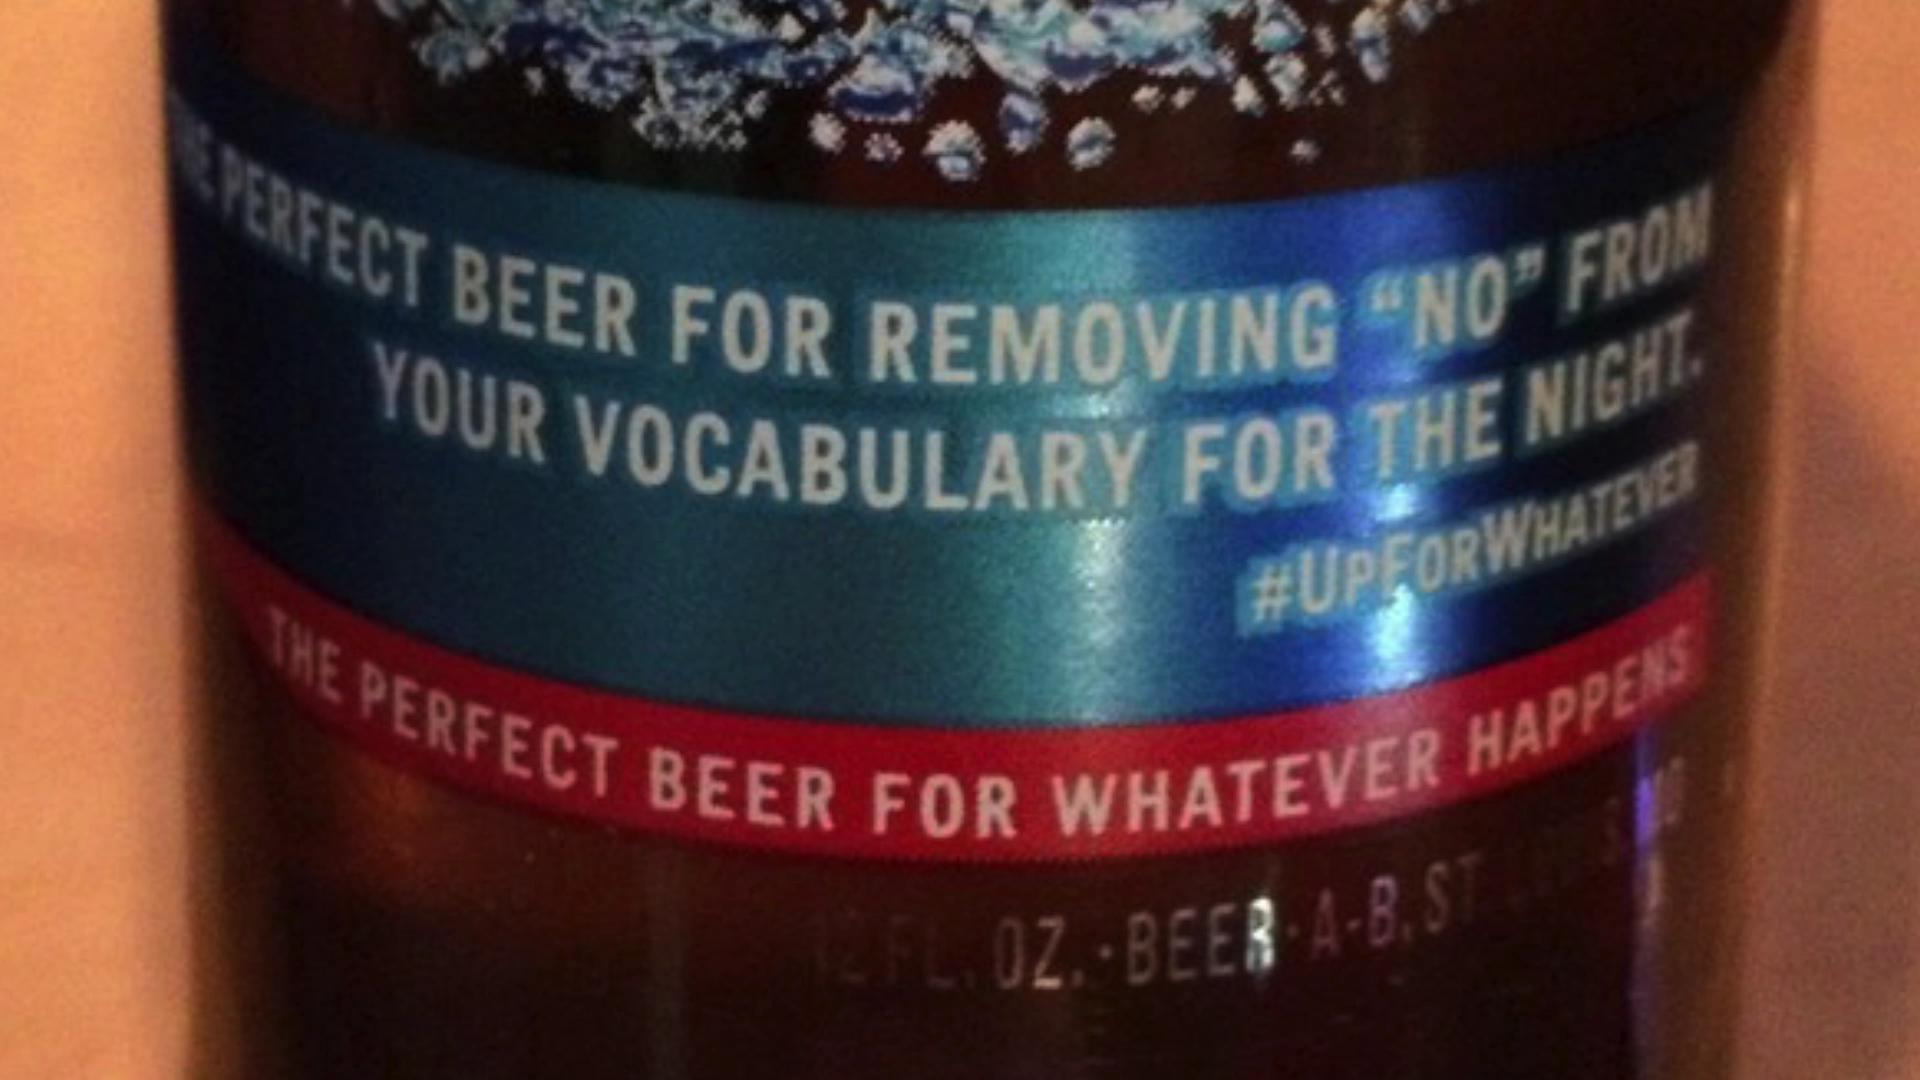 Bud light apologizes for removing no label aloadofball Image collections